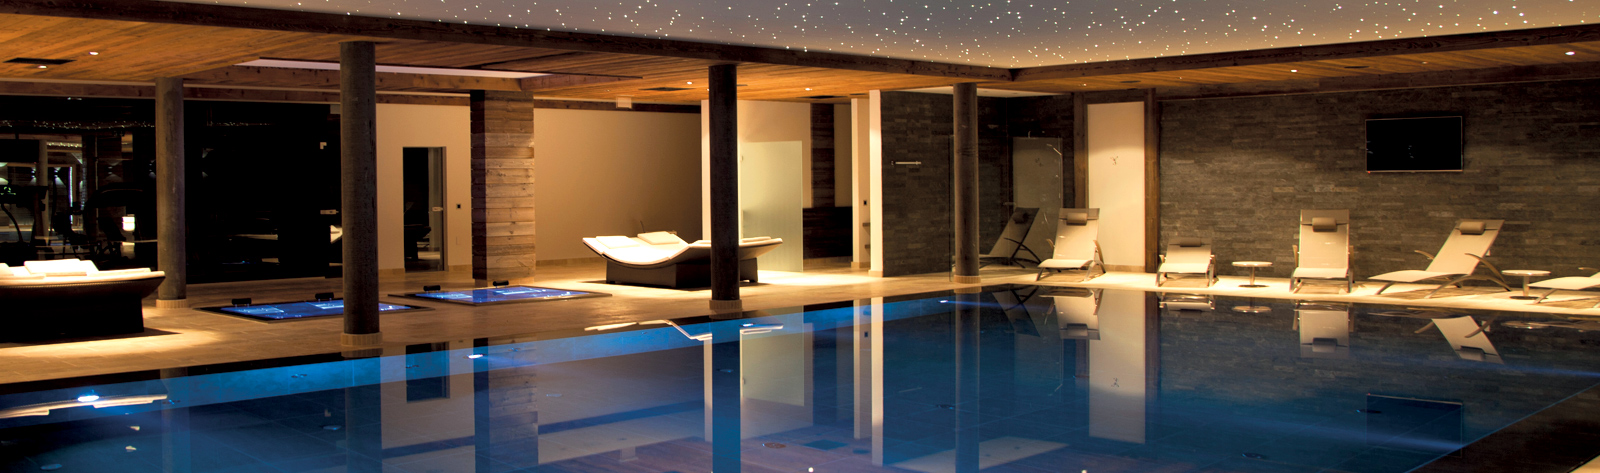 construction piscine installation de spa piscine b ton piscine d bordement spa ext rieur. Black Bedroom Furniture Sets. Home Design Ideas